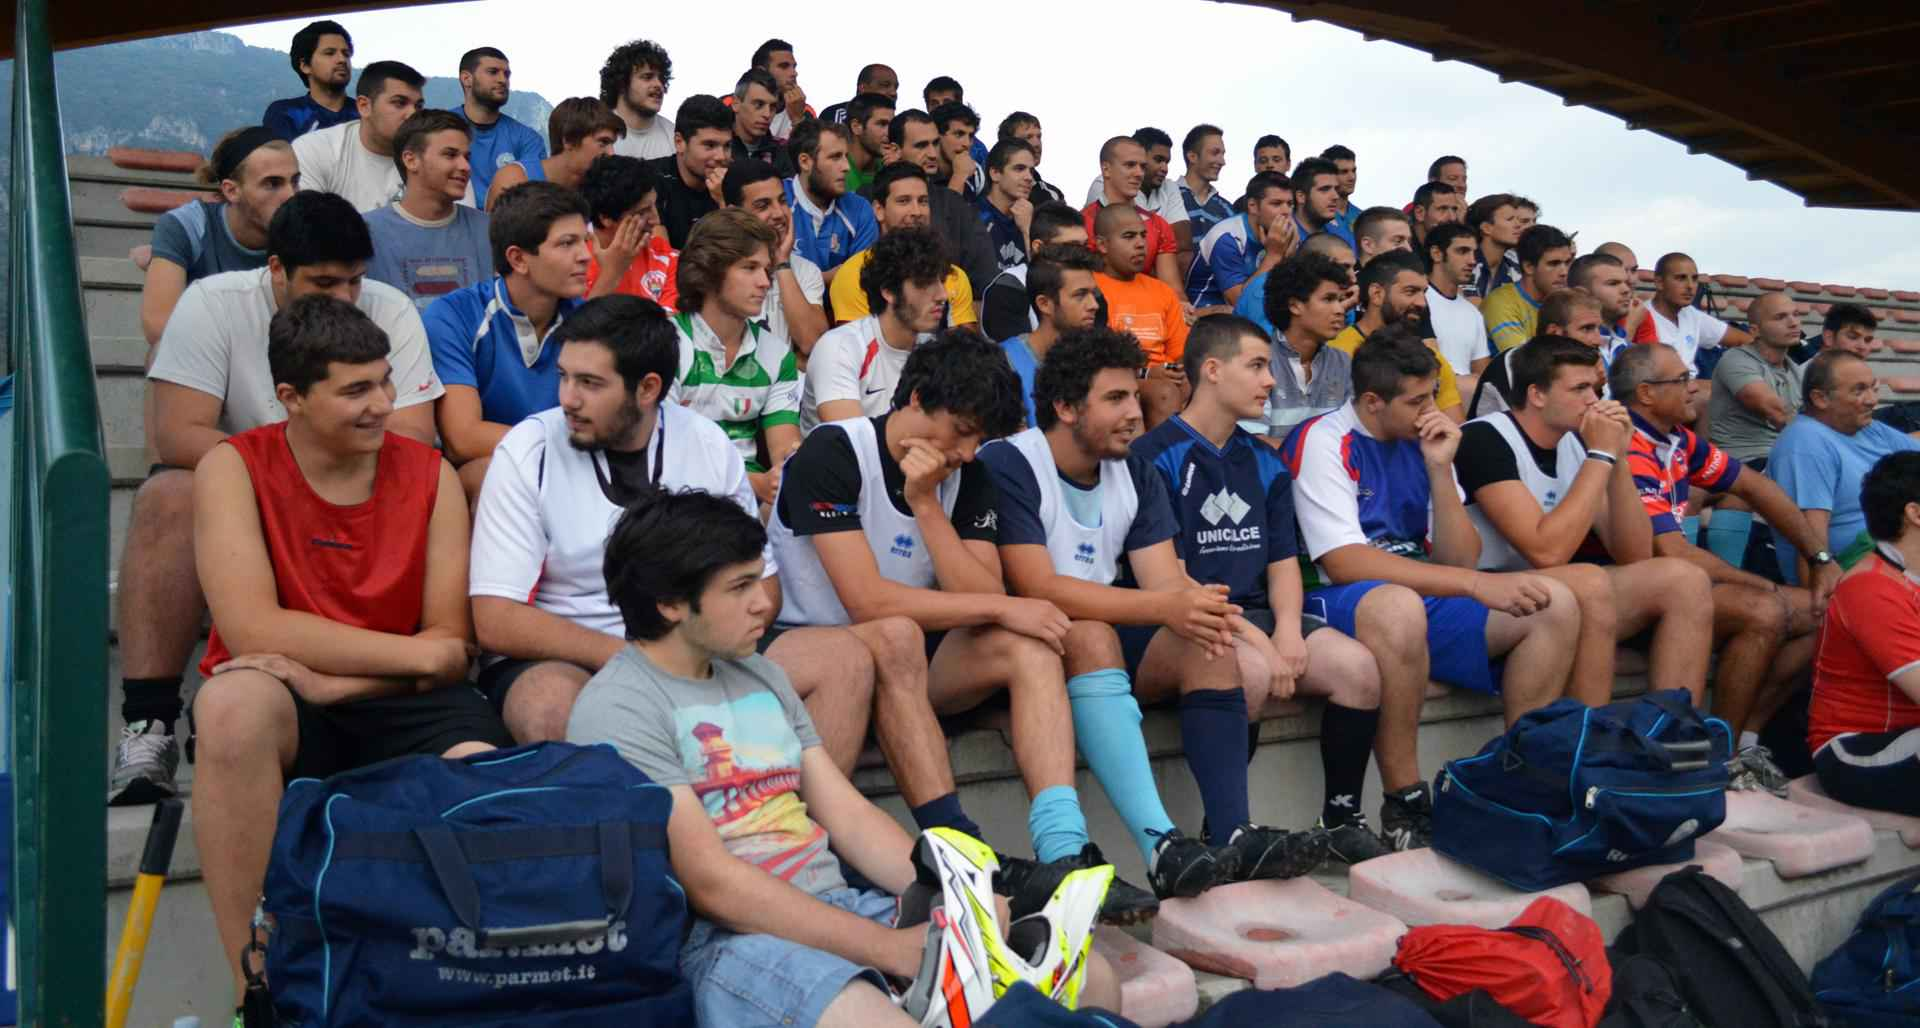 rugby lecco 2014 2015 (12)